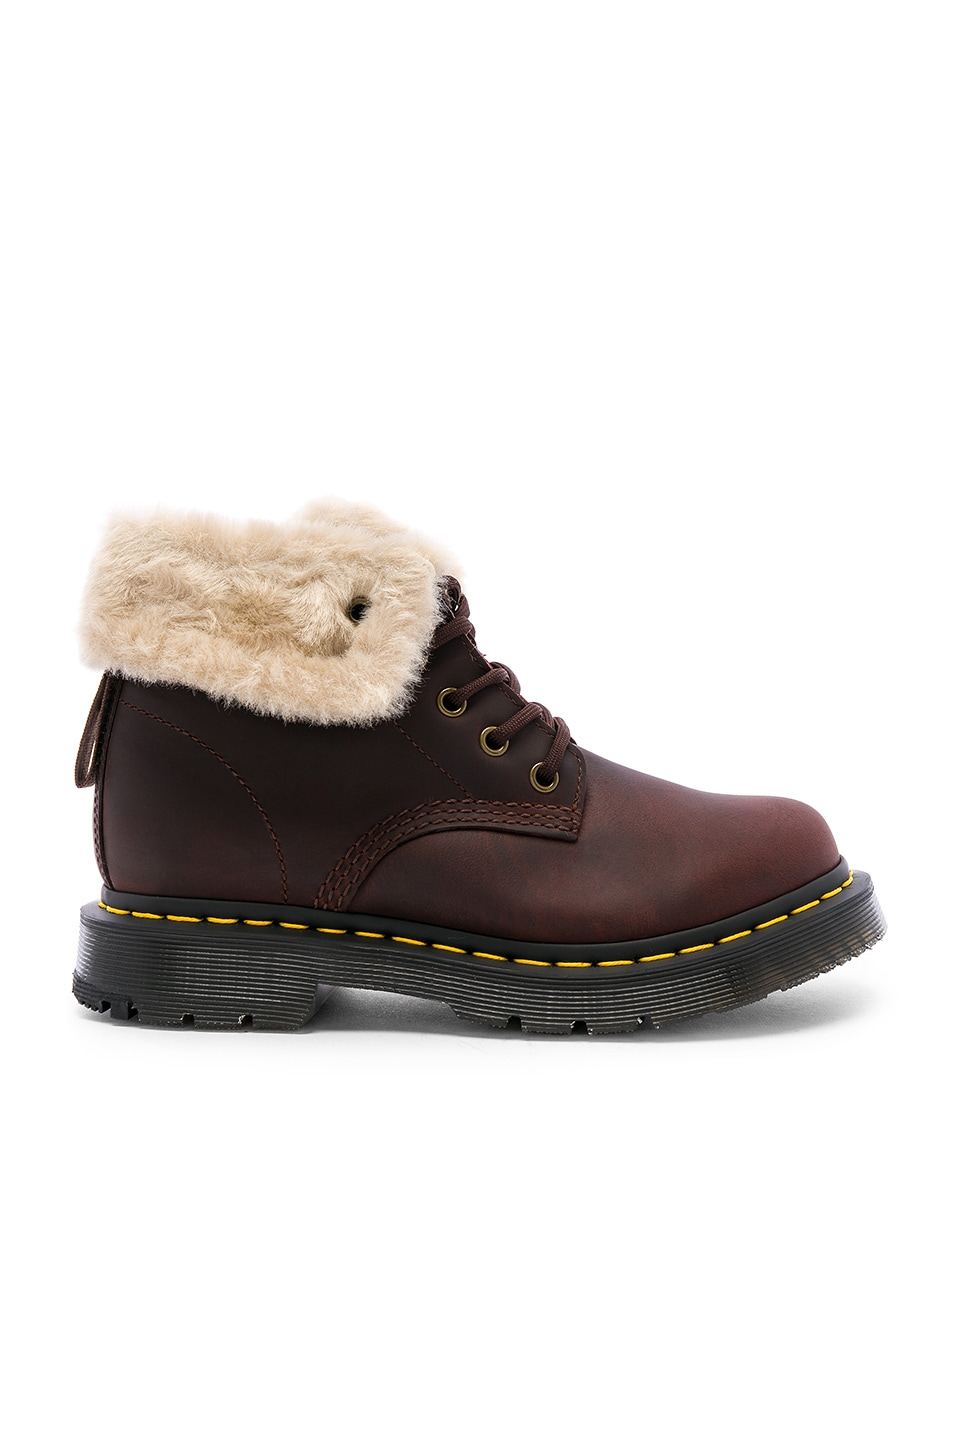 Dr. Martens 1460 Kolbert Snowplow Boot in Curry